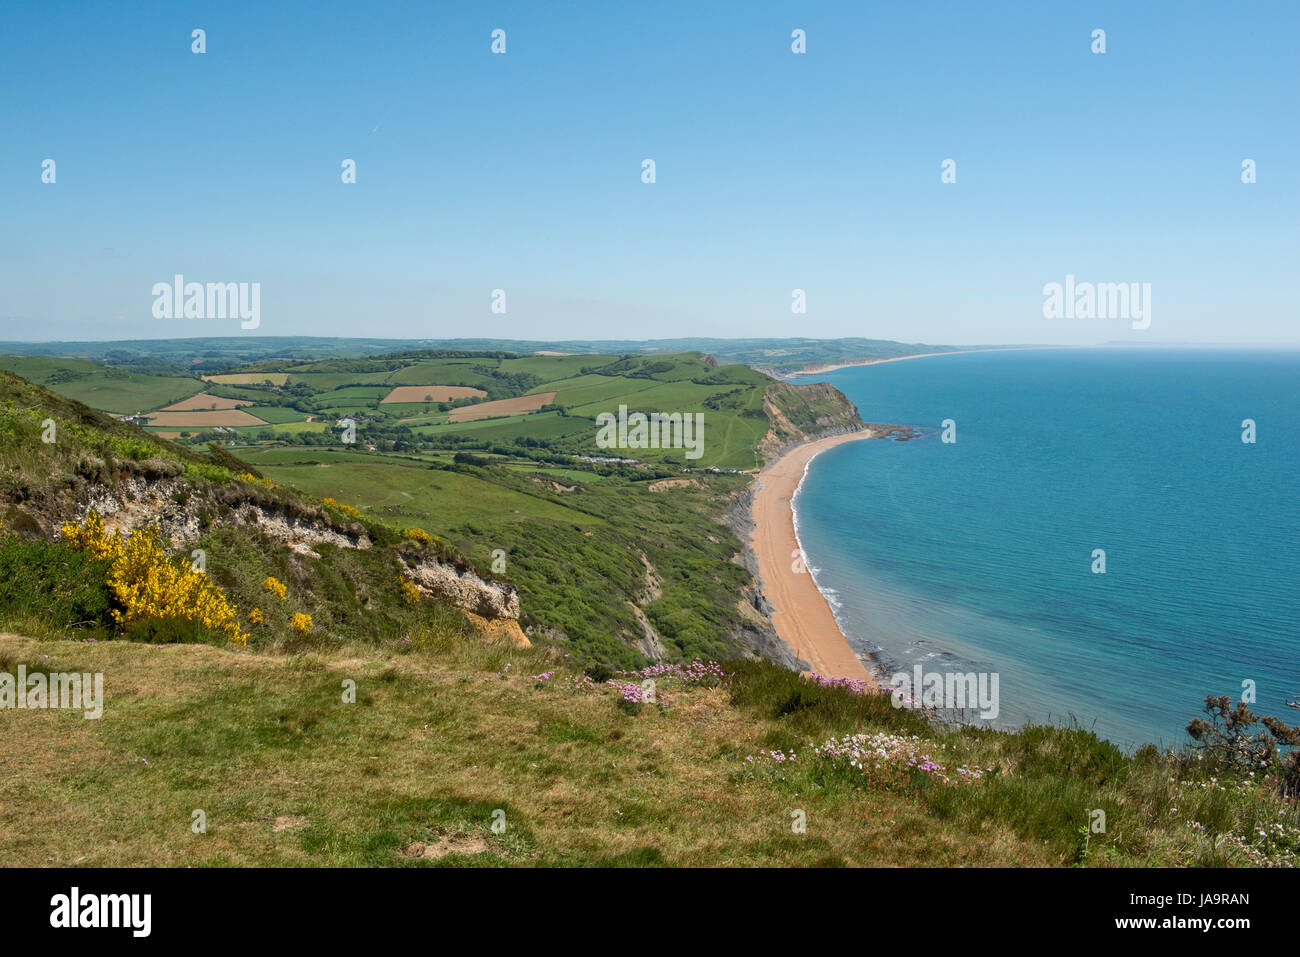 View from the top of Golden Cap, the highest peak on the south coast, looking east along the Jurassic Coast passed - Stock Image